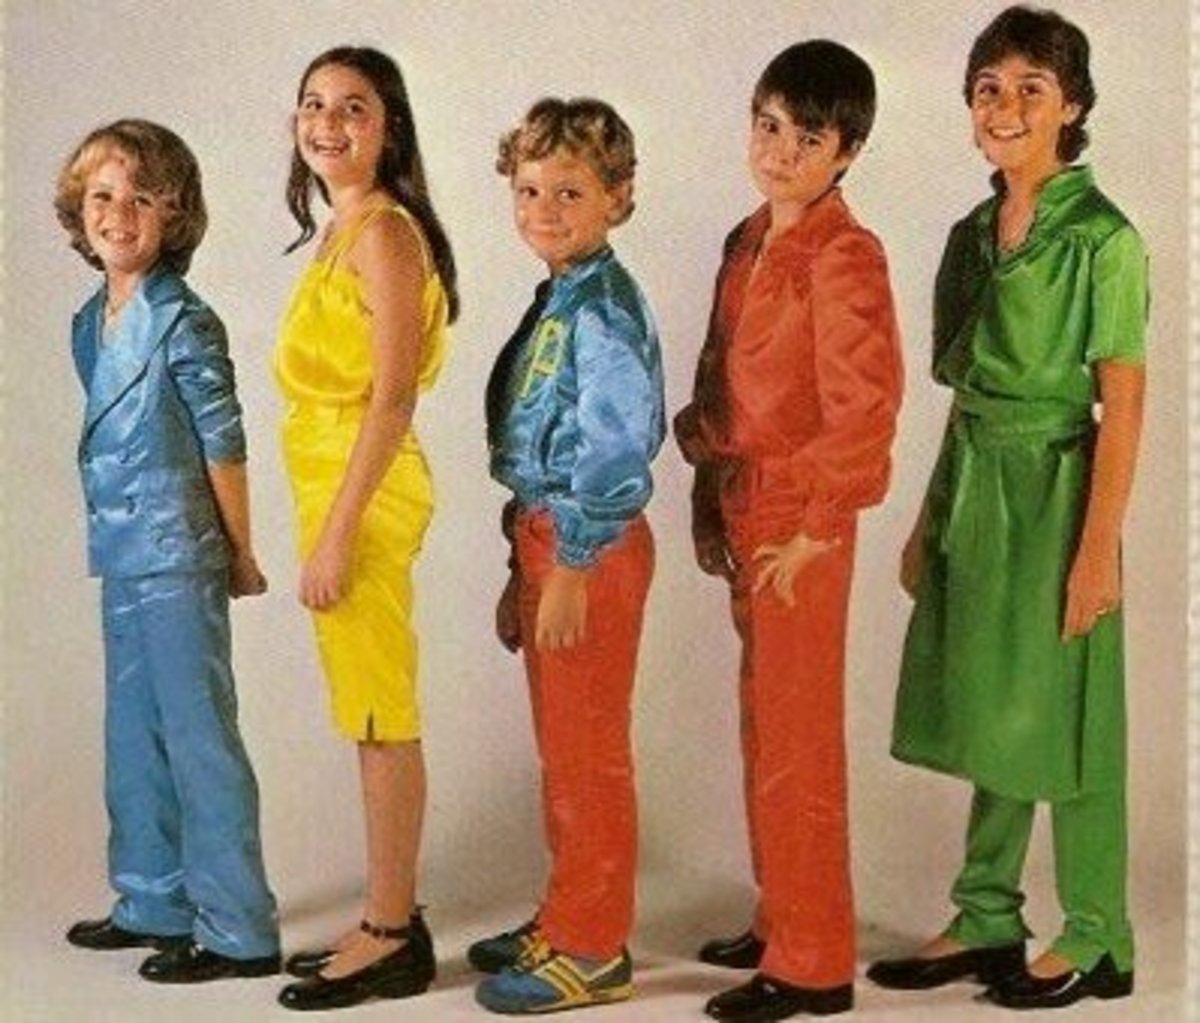 The childrens group Parchis is composed of four generations. This picture shows the members of the first generation: Tino Fernandez was the red chip, Yolanda the yellow, chip, Gemma Pratt the green chip, David Munoz was the Dice (the middle boy) and